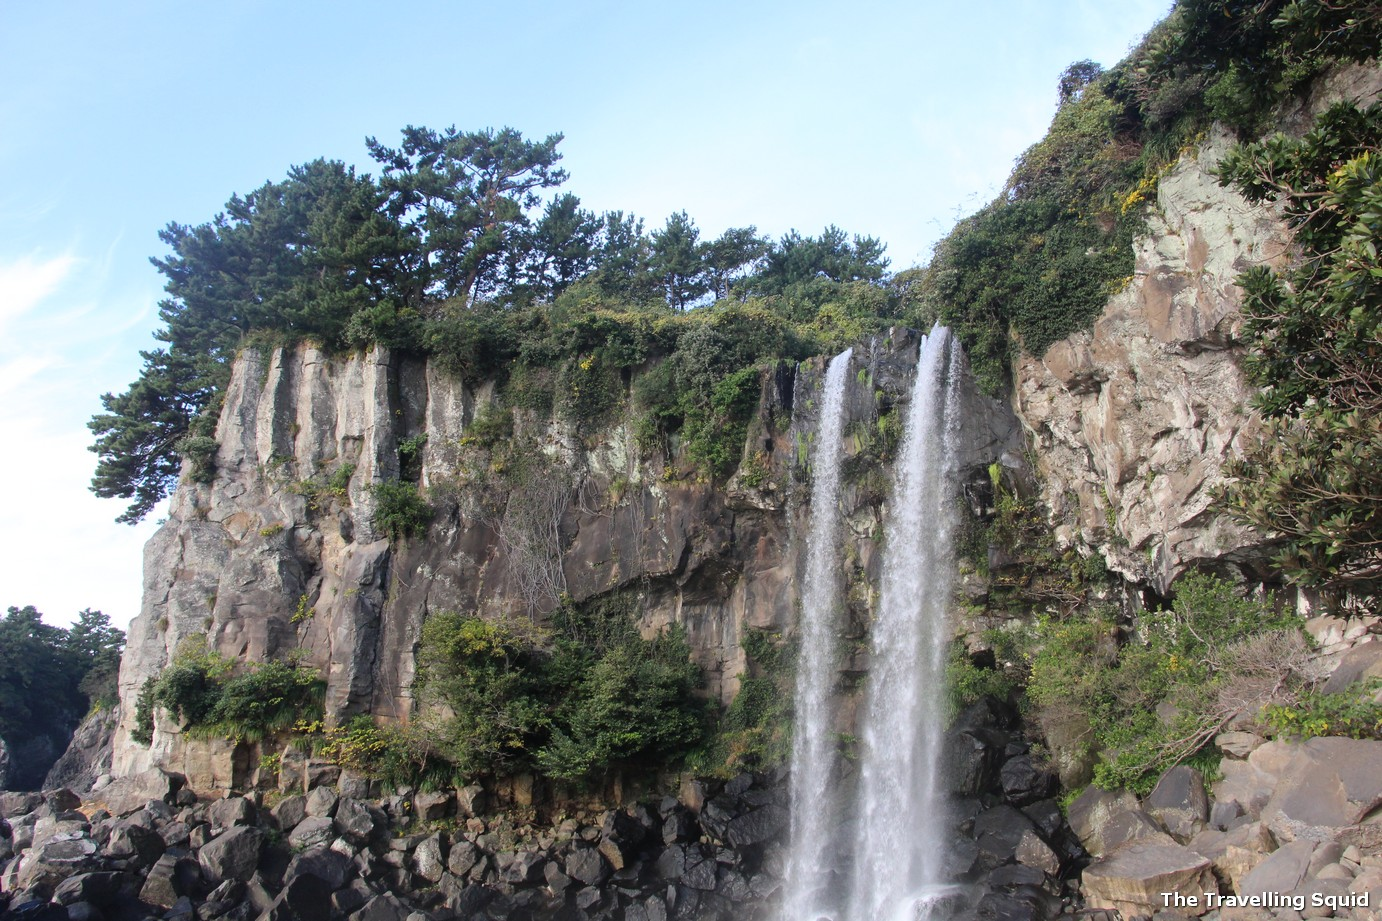 Jeongbang waterfall in Jeju